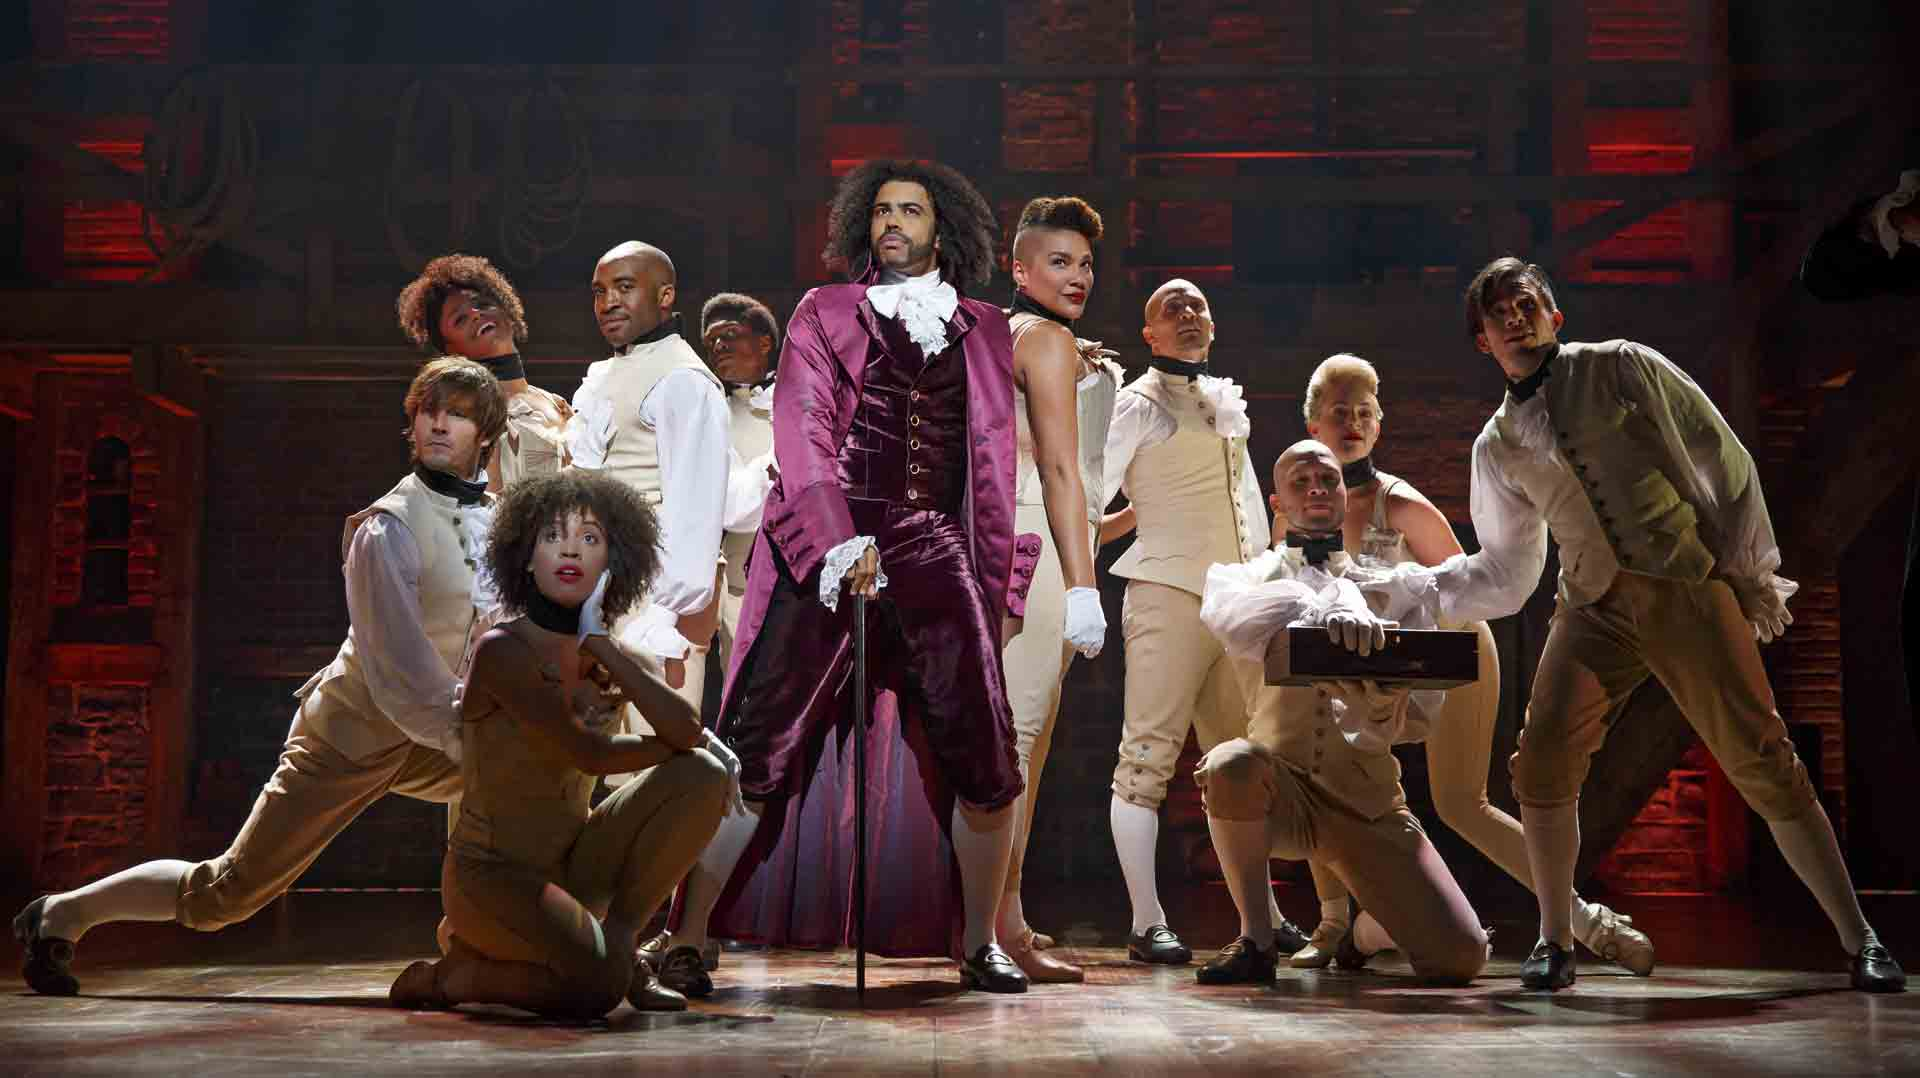 HamiltonBway0341r-Daveed-Diggs-as-Thomas-Jefferson-and-the-ensemble-of-HAMILTON